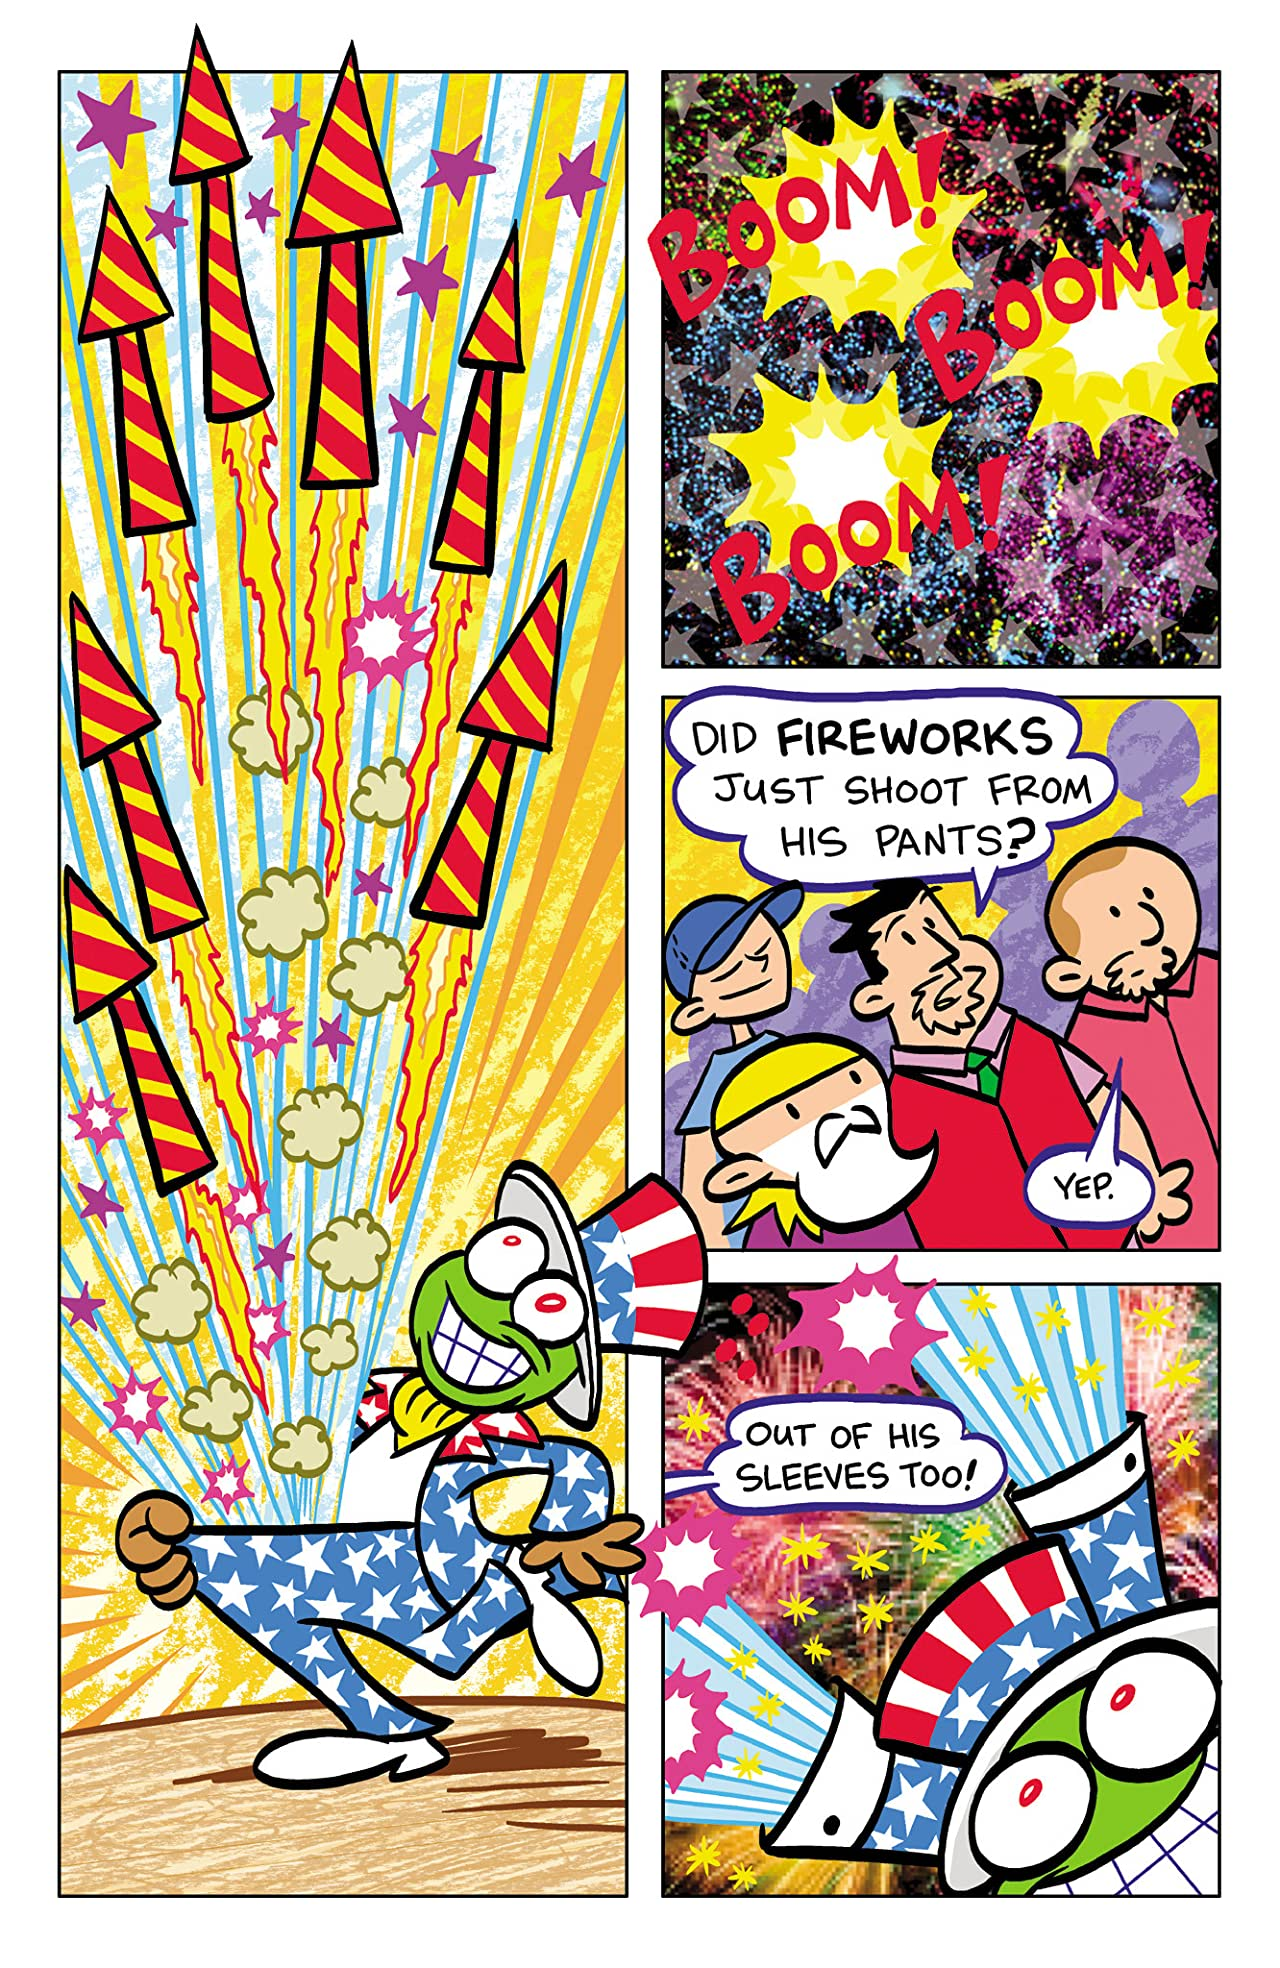 Itty Bitty Comics: The Mask #3